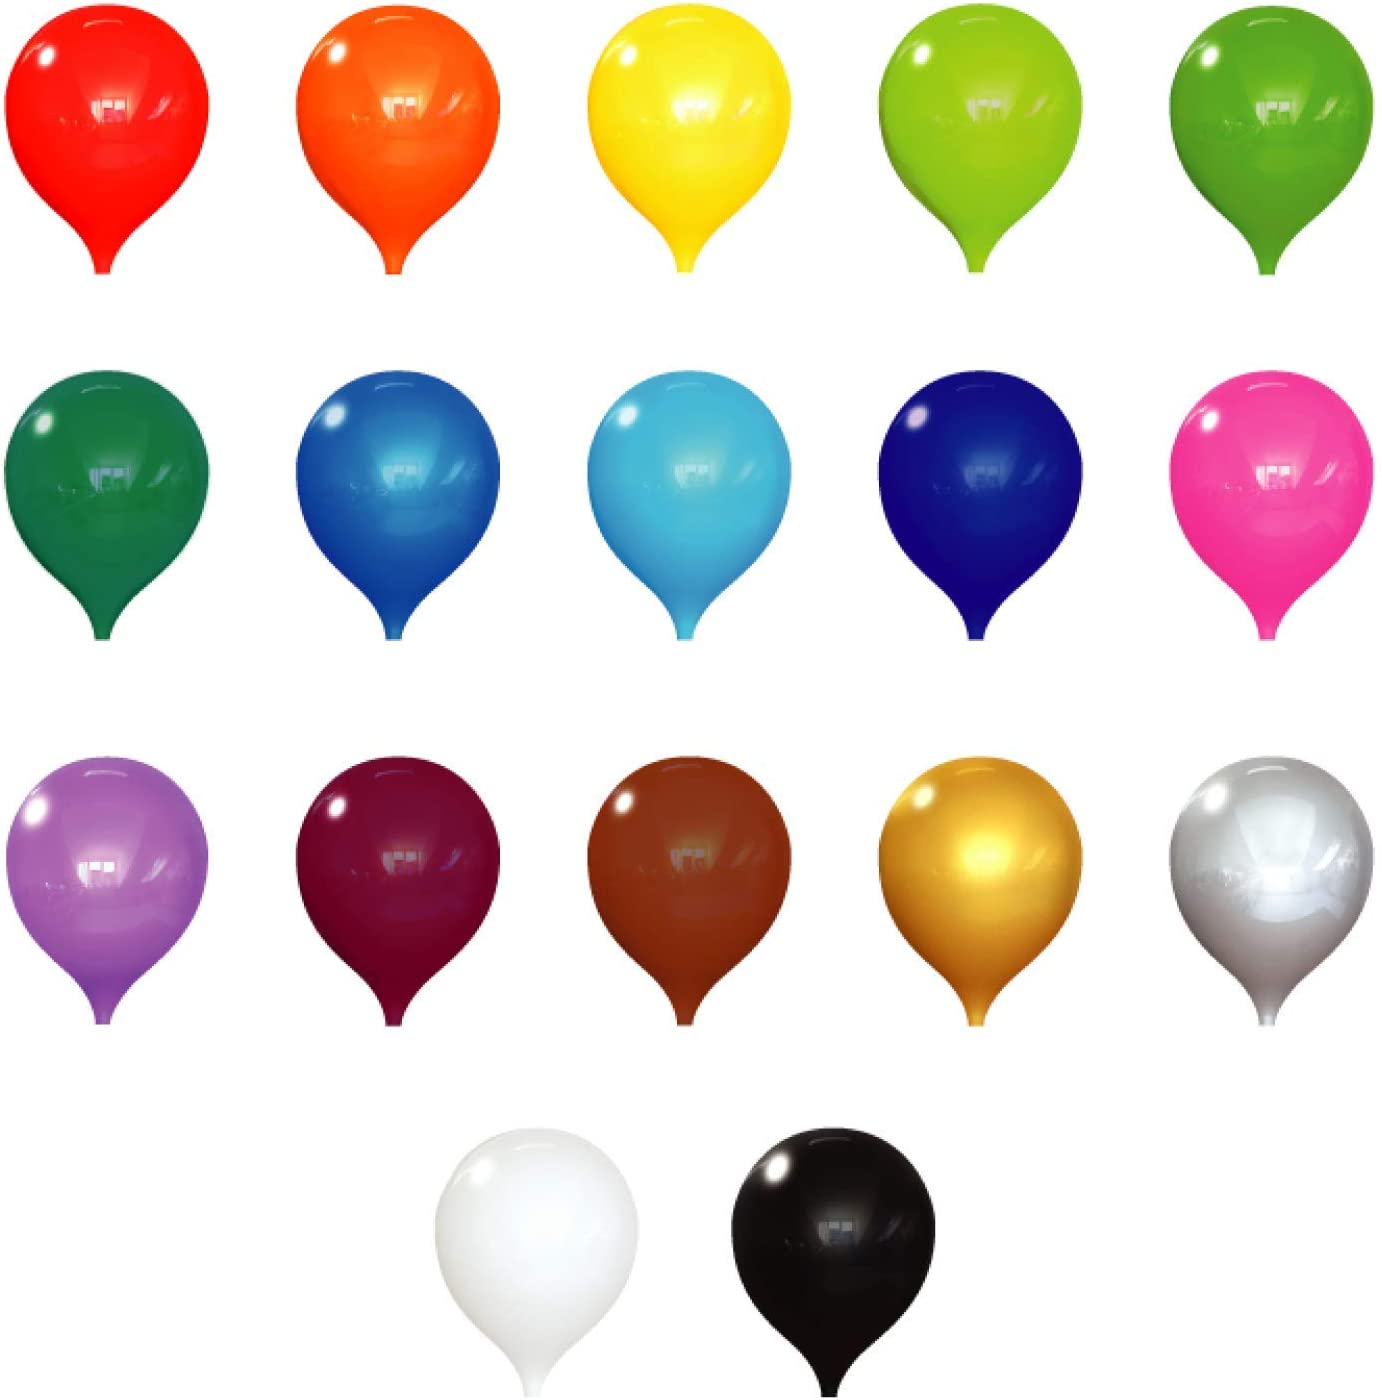 where can i inflate balloons for free